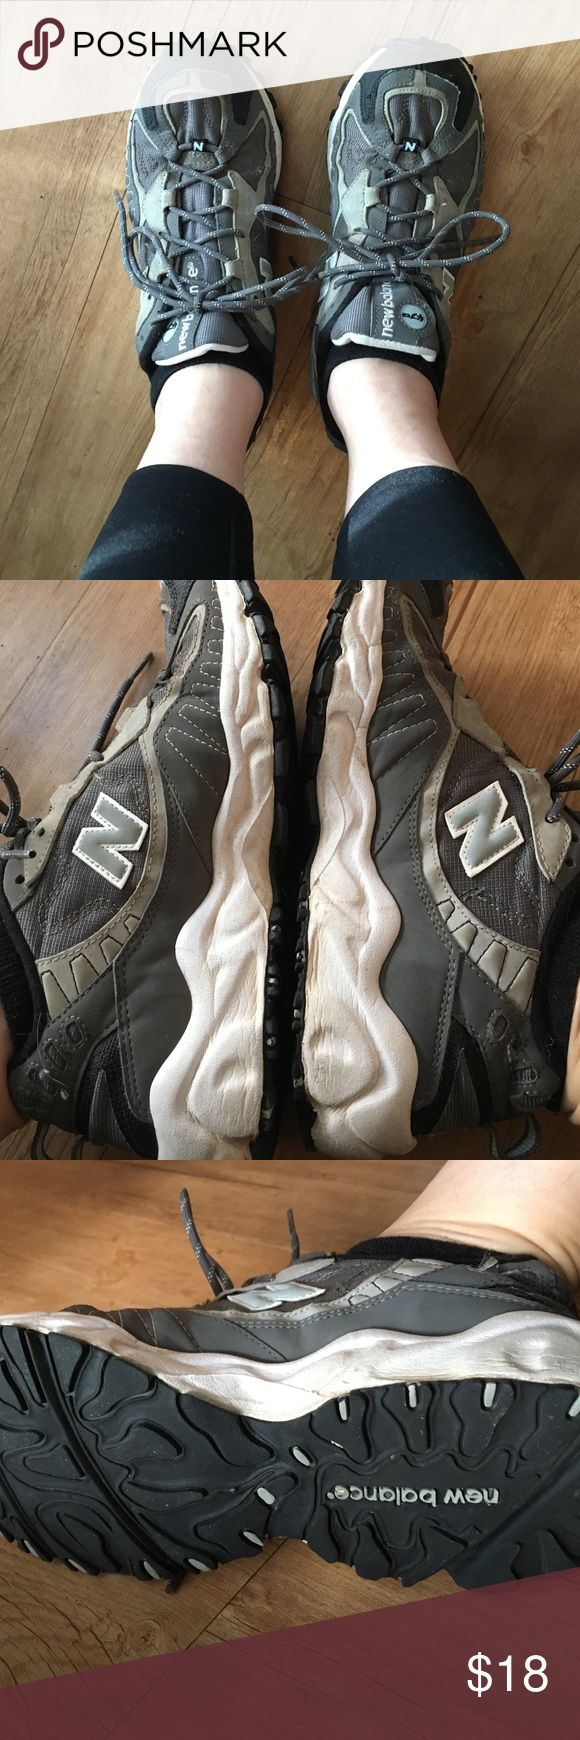 New balance comfy sneakers sz7 Dark gray and light gray New Balance running or walking shoes. Good condition. Some wear on the inside as seen in pic four. Still a great show and has lots of years left in these babies! Prices accordingly. Reasonable offers considered! 💕 New Balance Shoes Sneakers